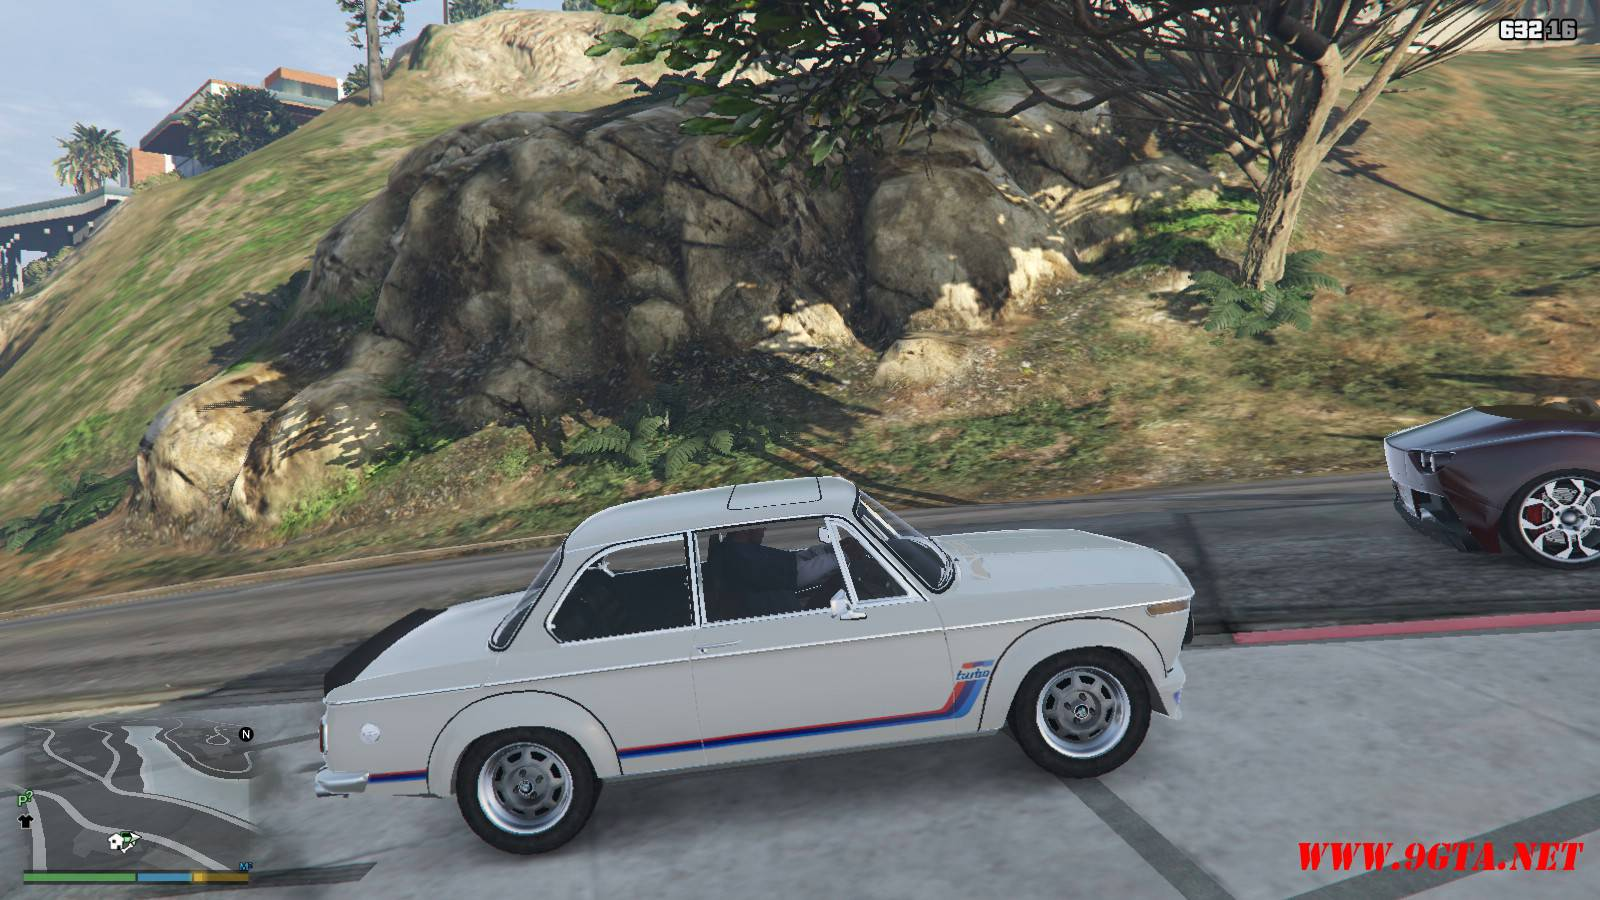 2002 BMW Turbo Mod For GTA5 (9)